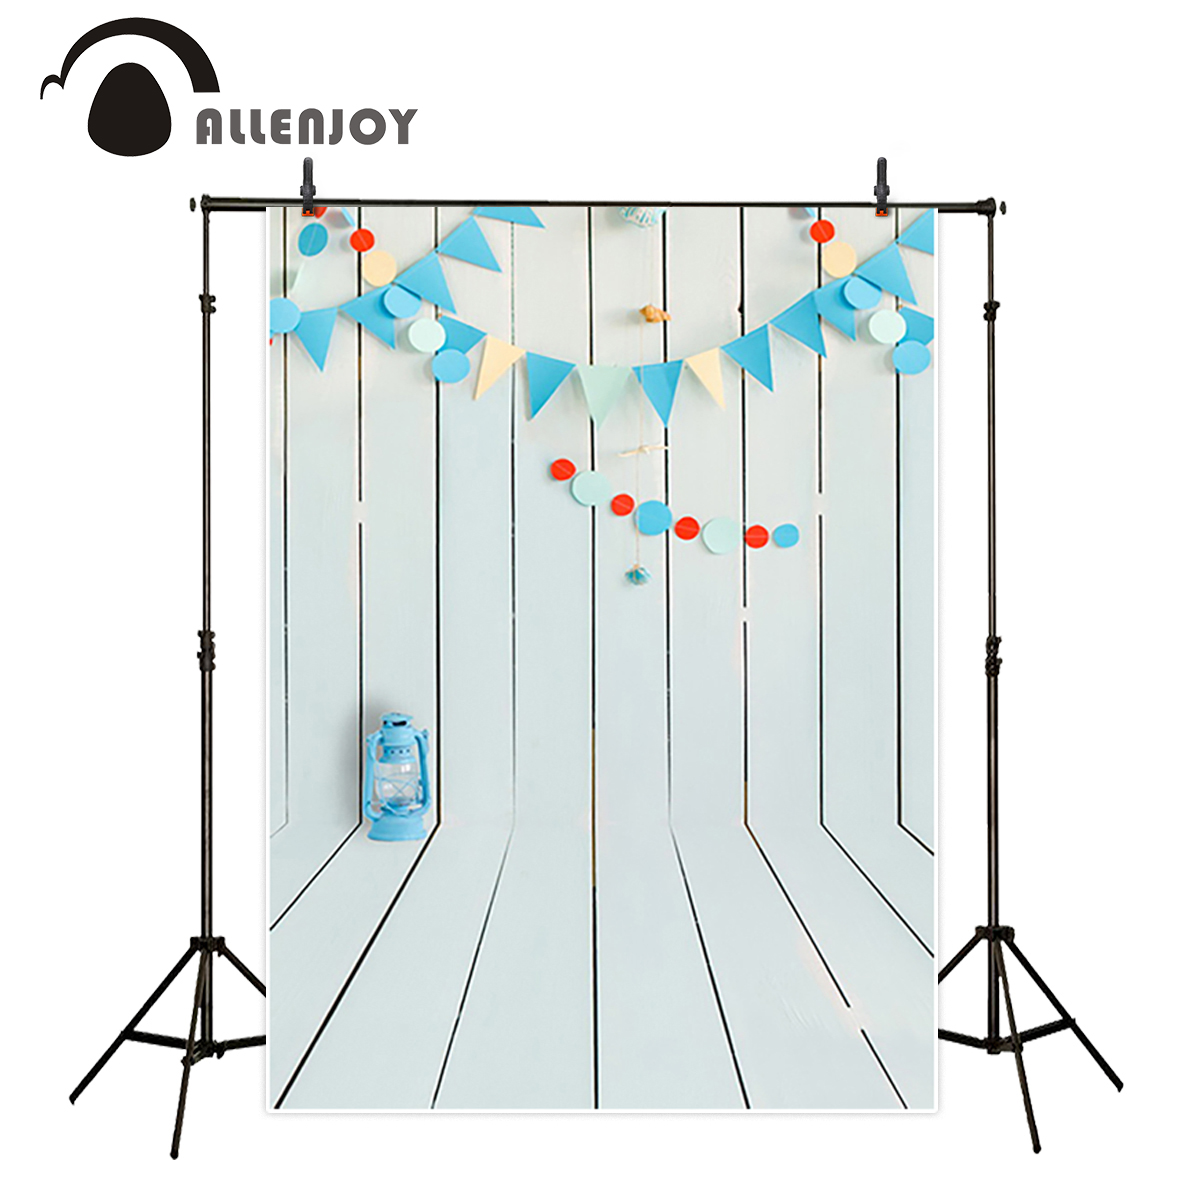 Allenjoy studio Photo background vintage colorful flags birthday blue floor photocall vinyl backdrops for photography allenjoy photography backdrops floor mosaic school blackboard kids vinyl photocall photographic studio computer printing lovely